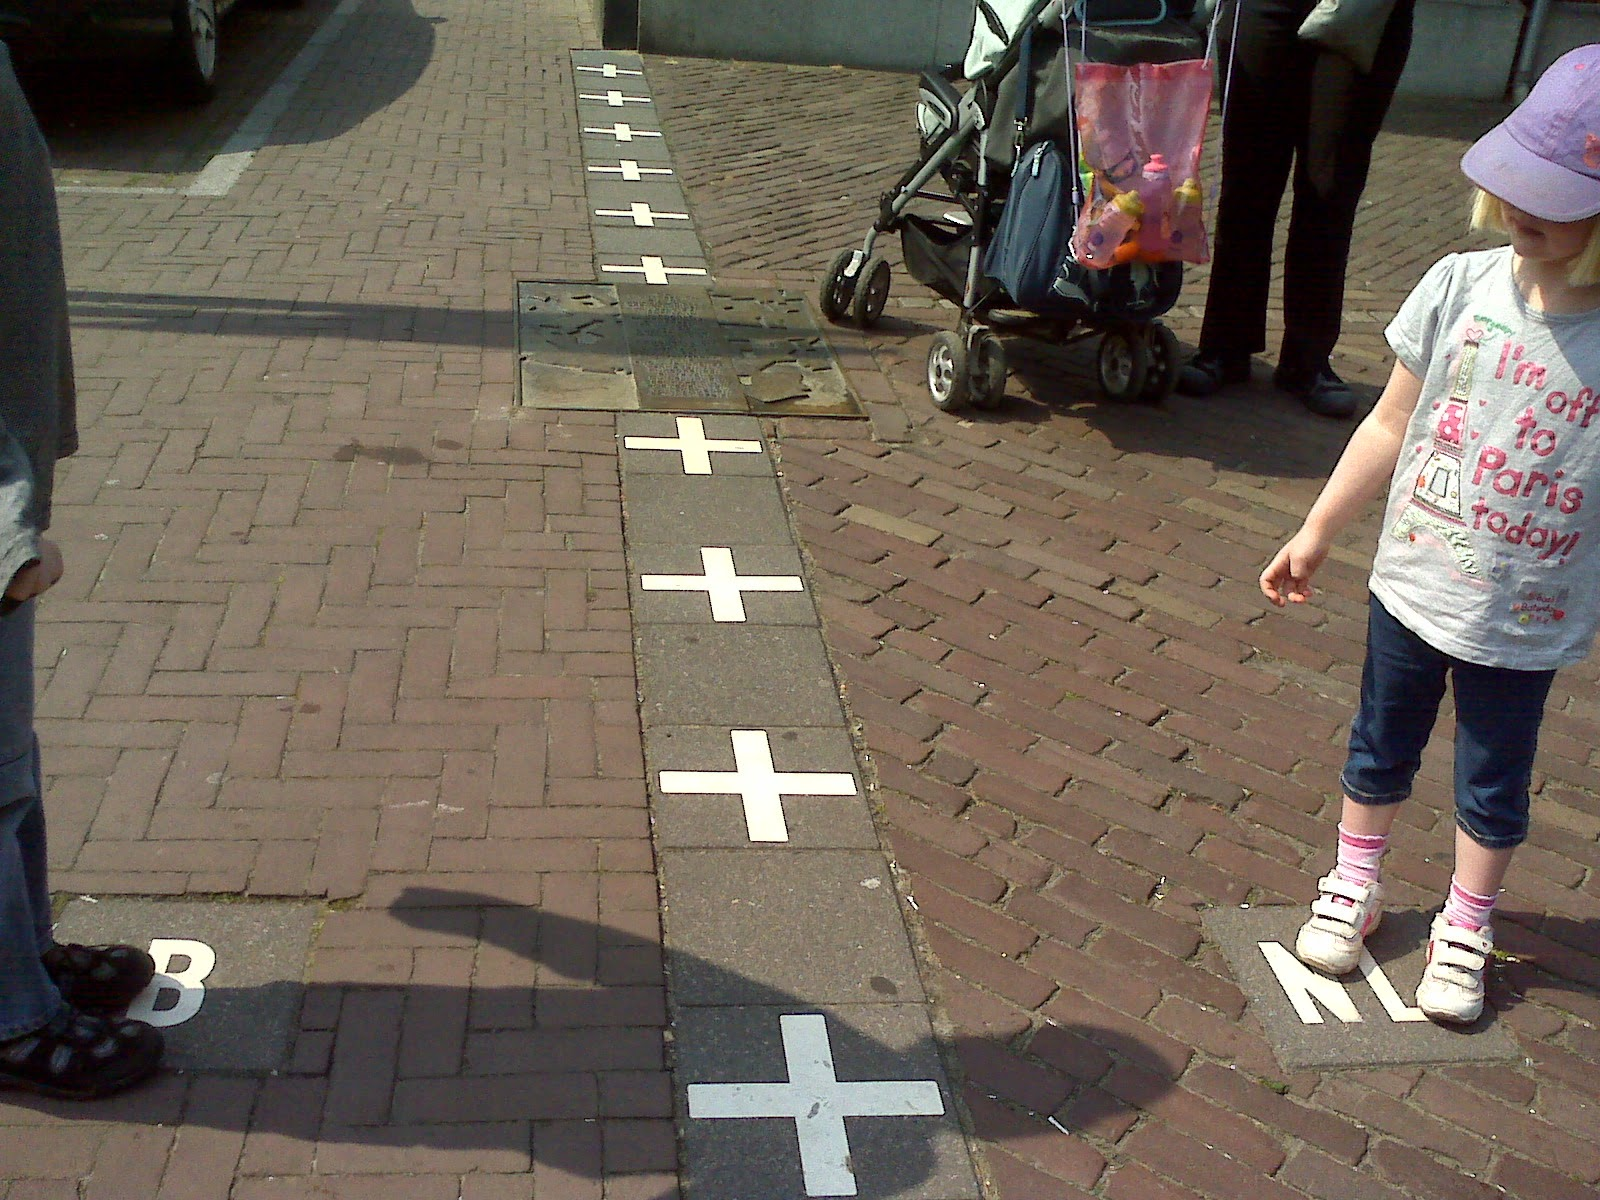 10 Amazing Border between Countries | The border between Netherlands and Belgium, in the city of Baarle